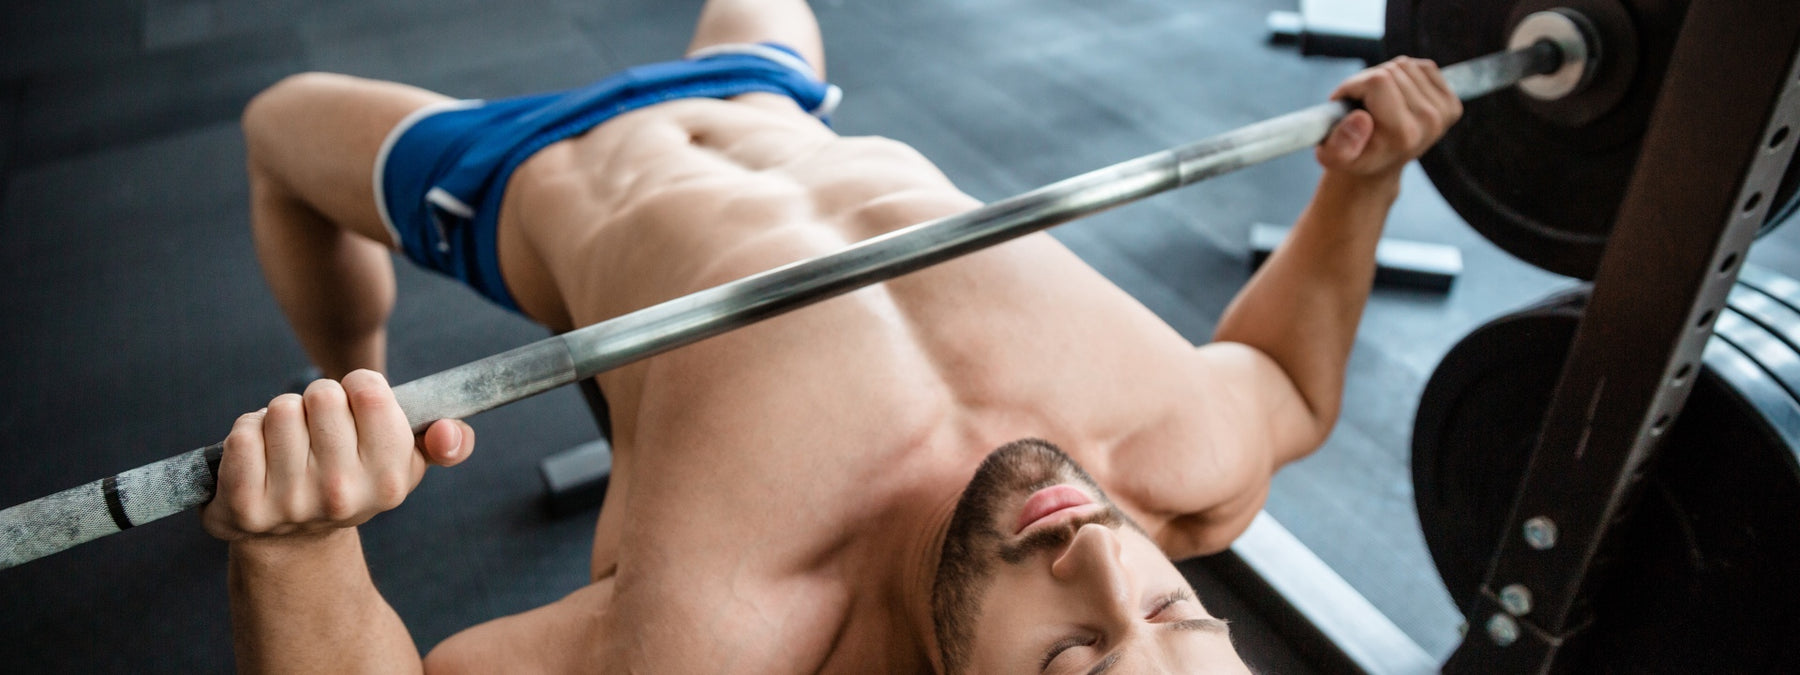 36 Explosive Ways to Gain Muscle Mass